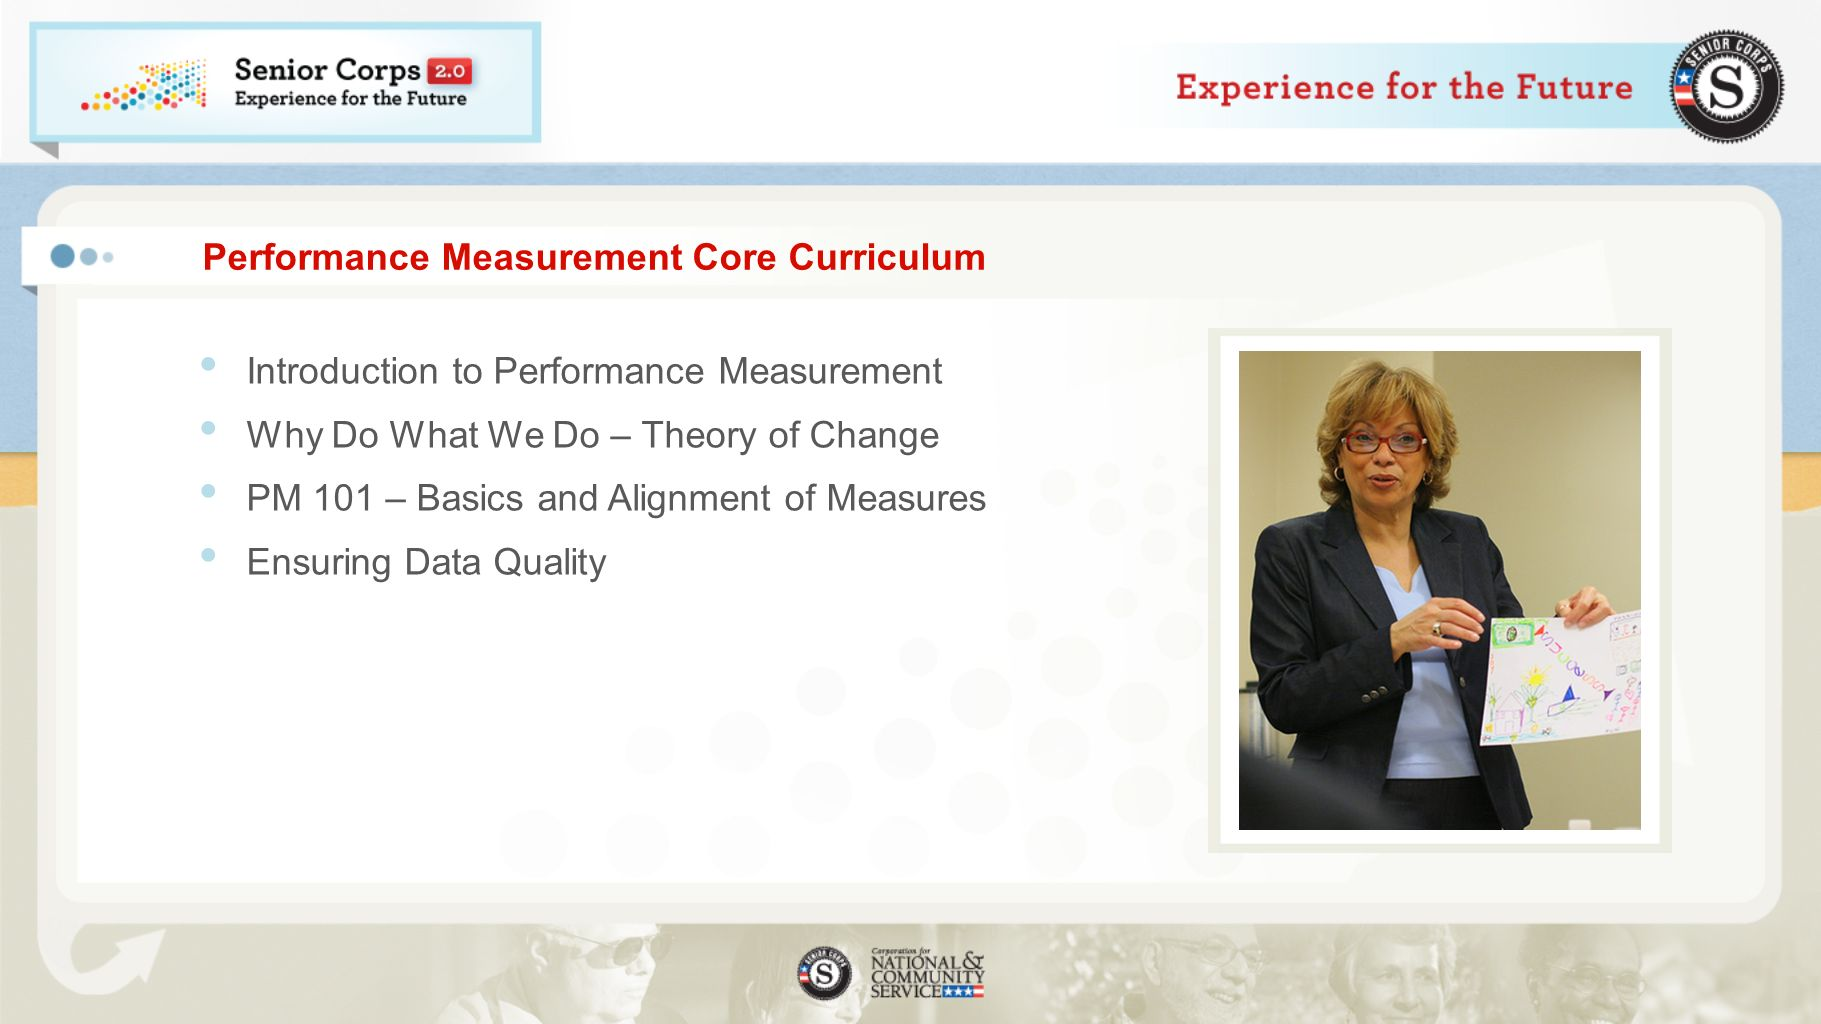 Performance Measurement Core Curriculum Introduction to Performance Measurement Why Do What We Do – Theory of Change PM 101 – Basics and Alignment of Measures Ensuring Data Quality